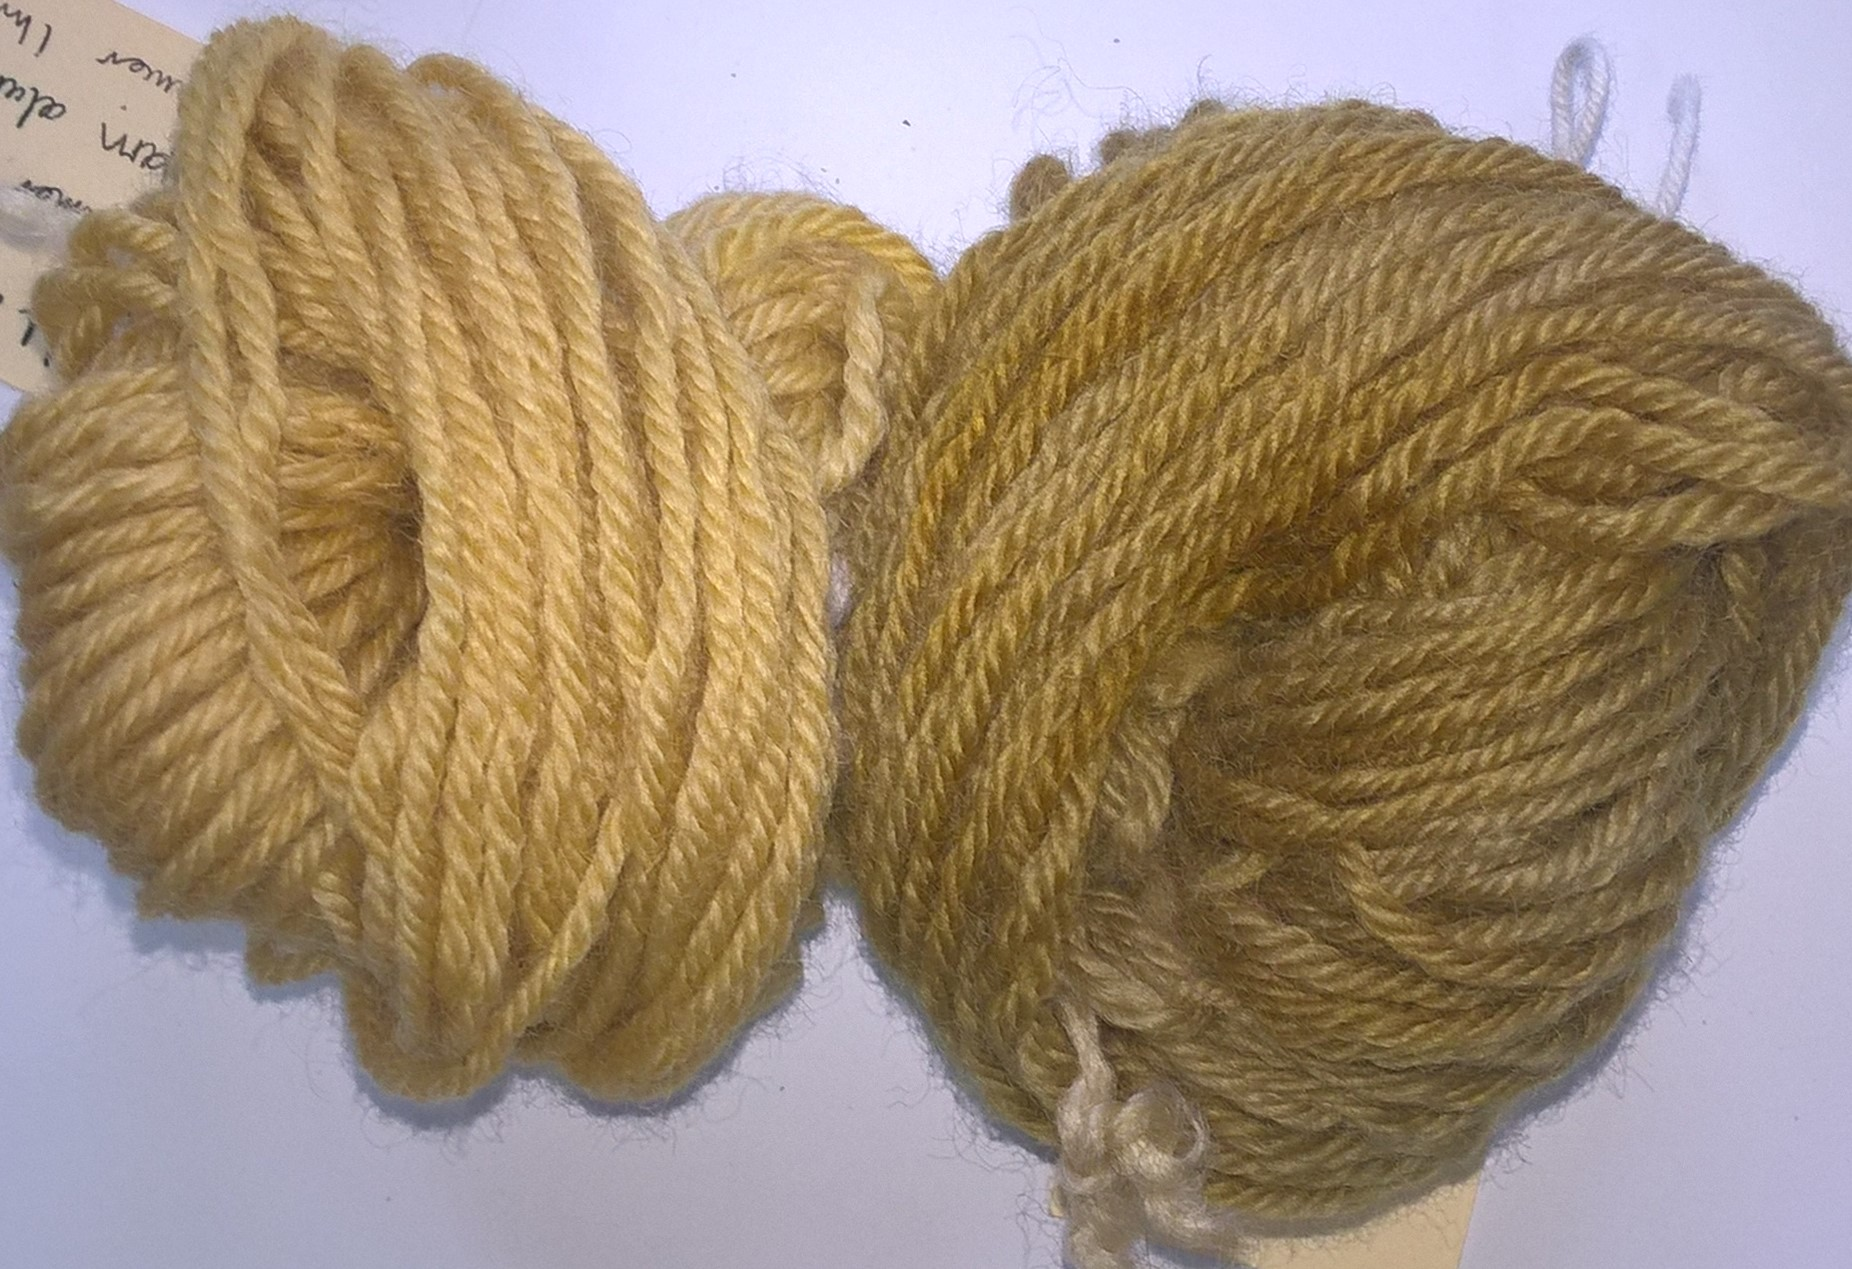 Yarn dyed with weld, without and with mordent